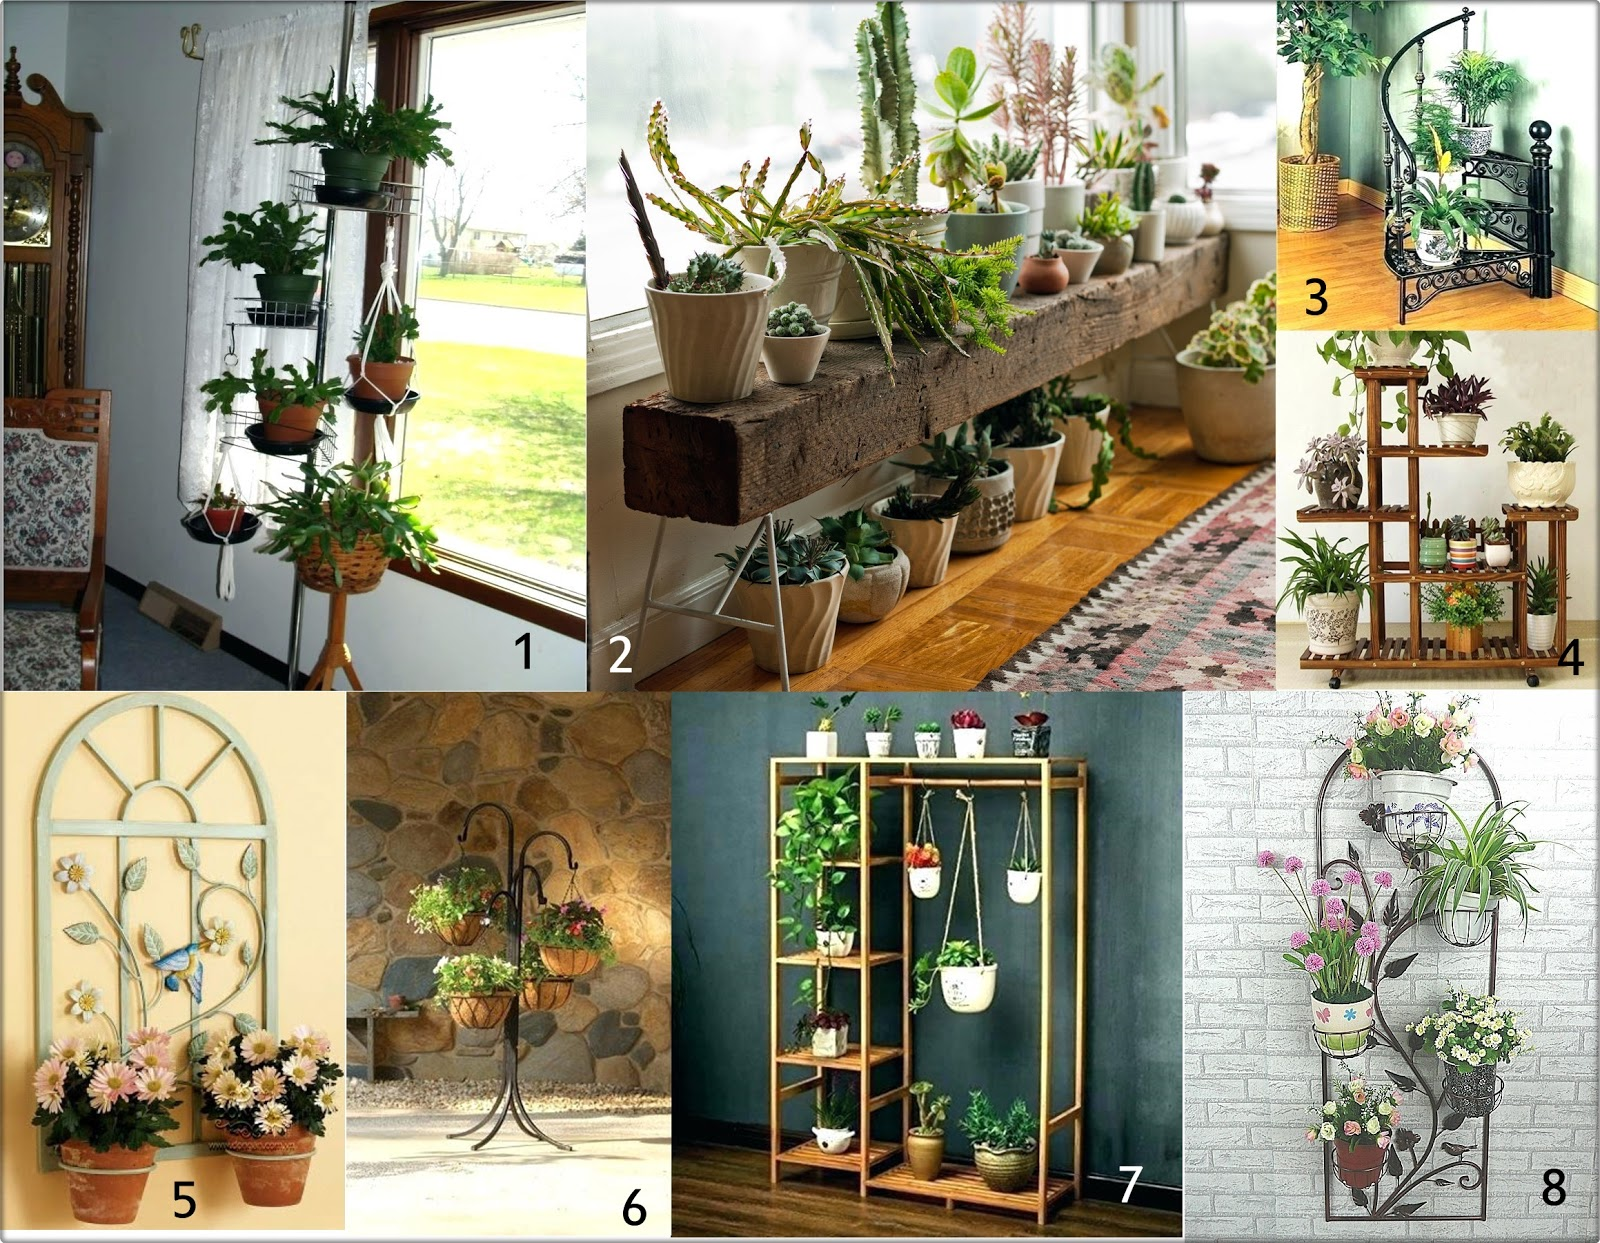 12 Amazing Plant Stand Ideas That Are Quite Magical For ... on Amazing Plant Stand Ideas  id=55749